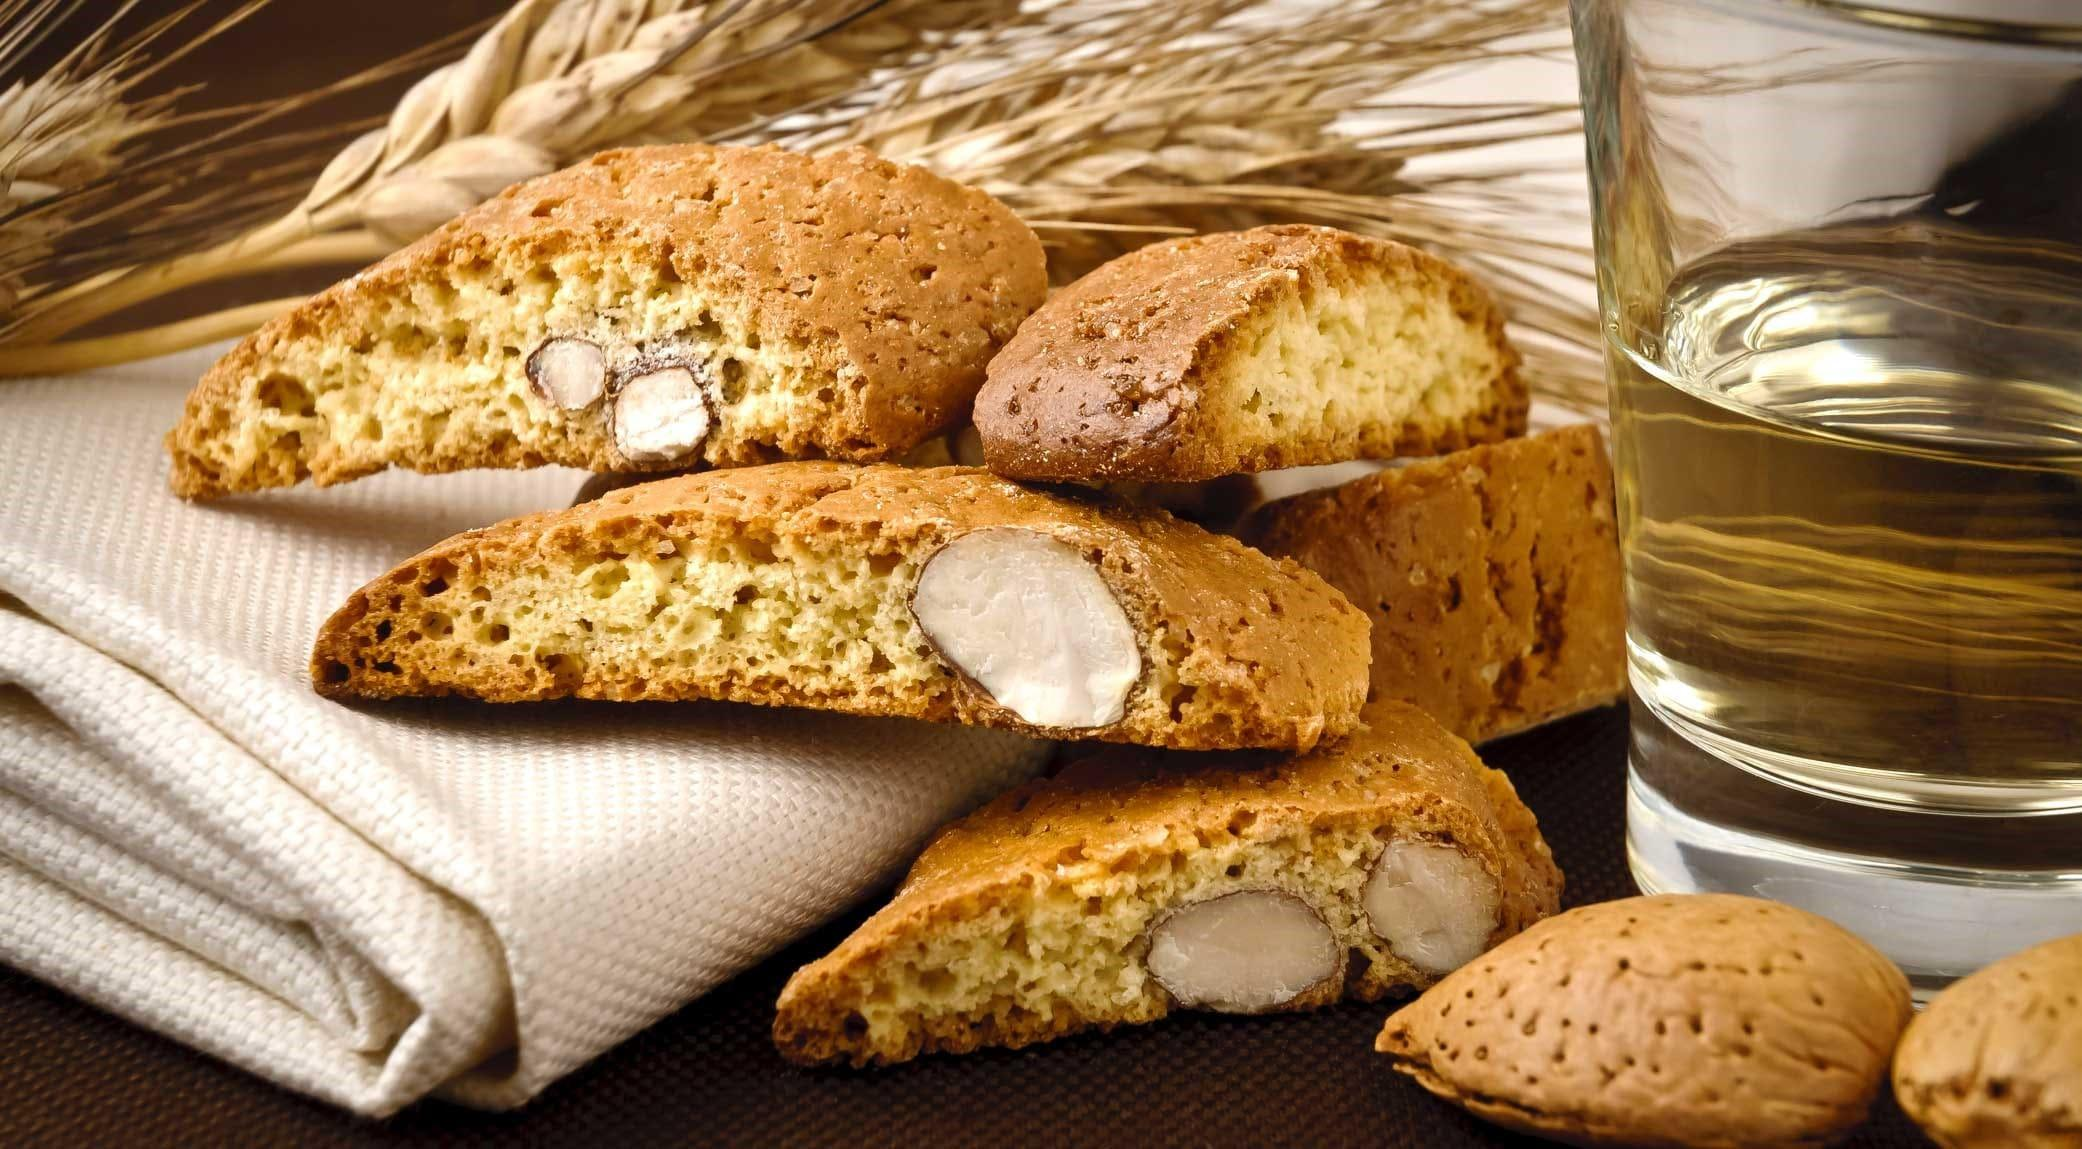 original_016-cantuccini-finedininglovers.jpg